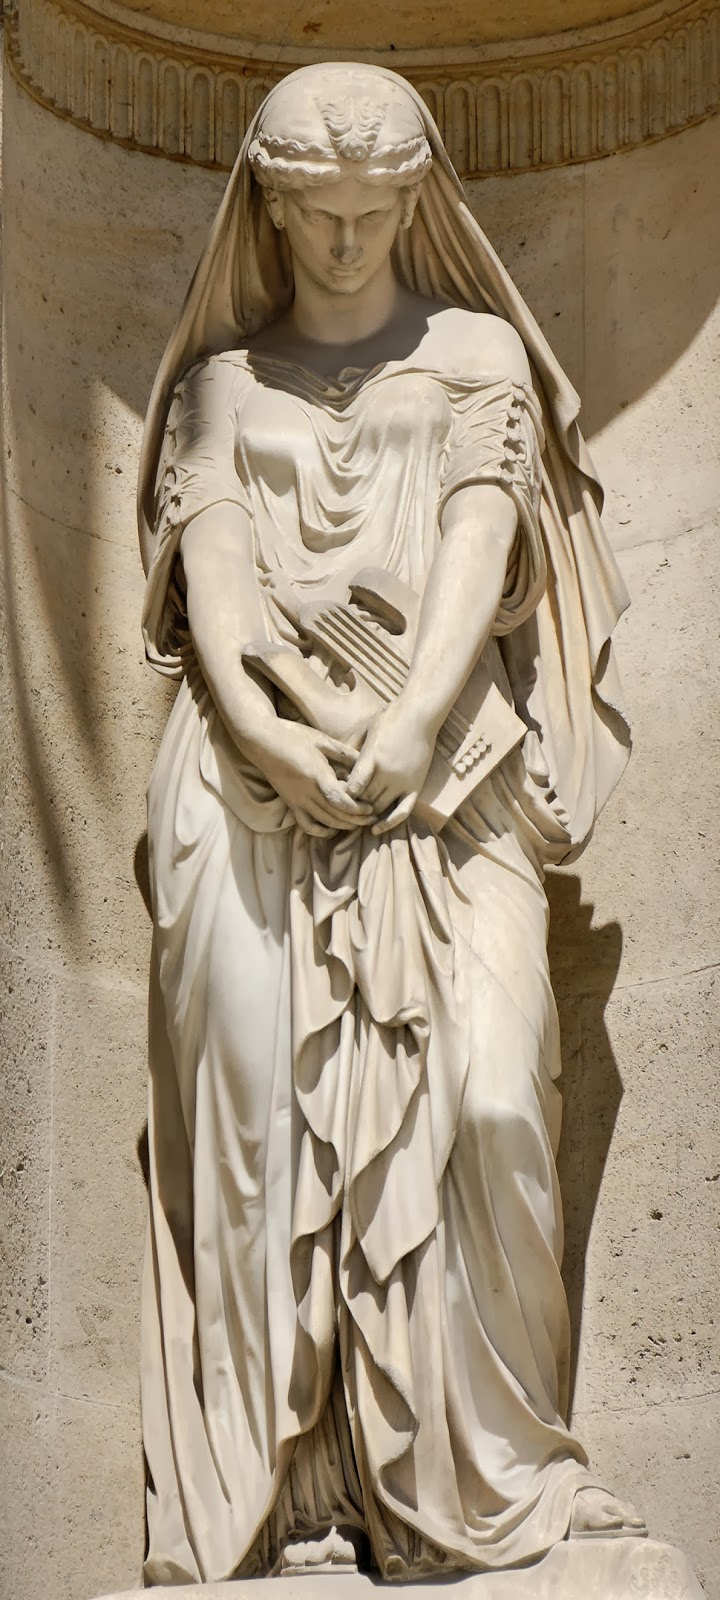 http://commons.wikimedia.org/wiki/File:Sappho_Loison_cour_Carree_Louvre.jpg